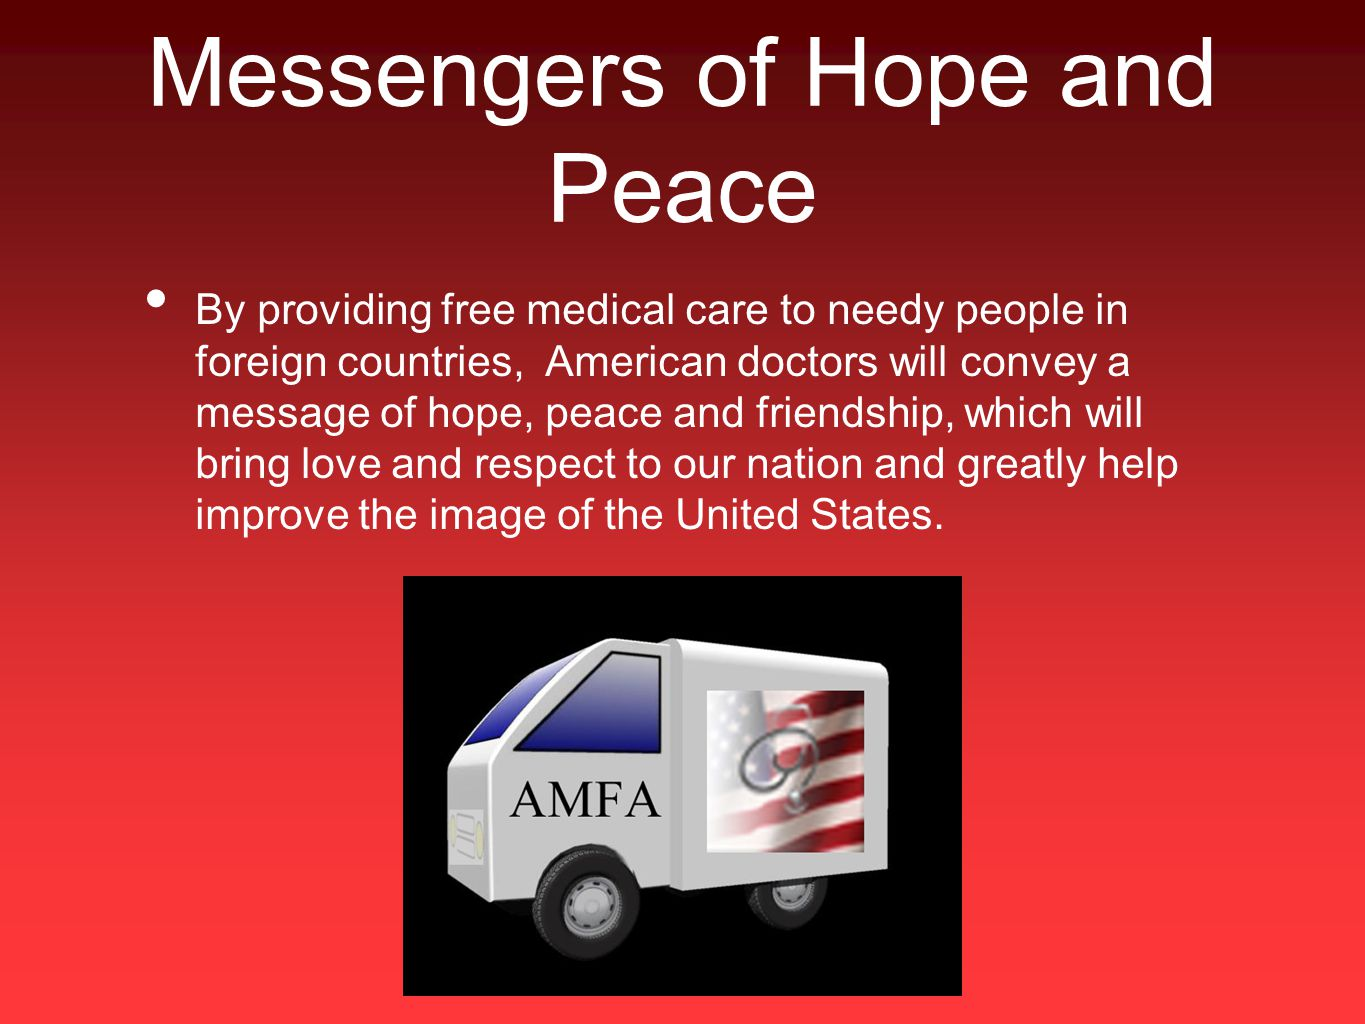 Messengers of Hope and Peace By providing free medical care to needy people in foreign countries, American doctors will convey a message of hope, peac